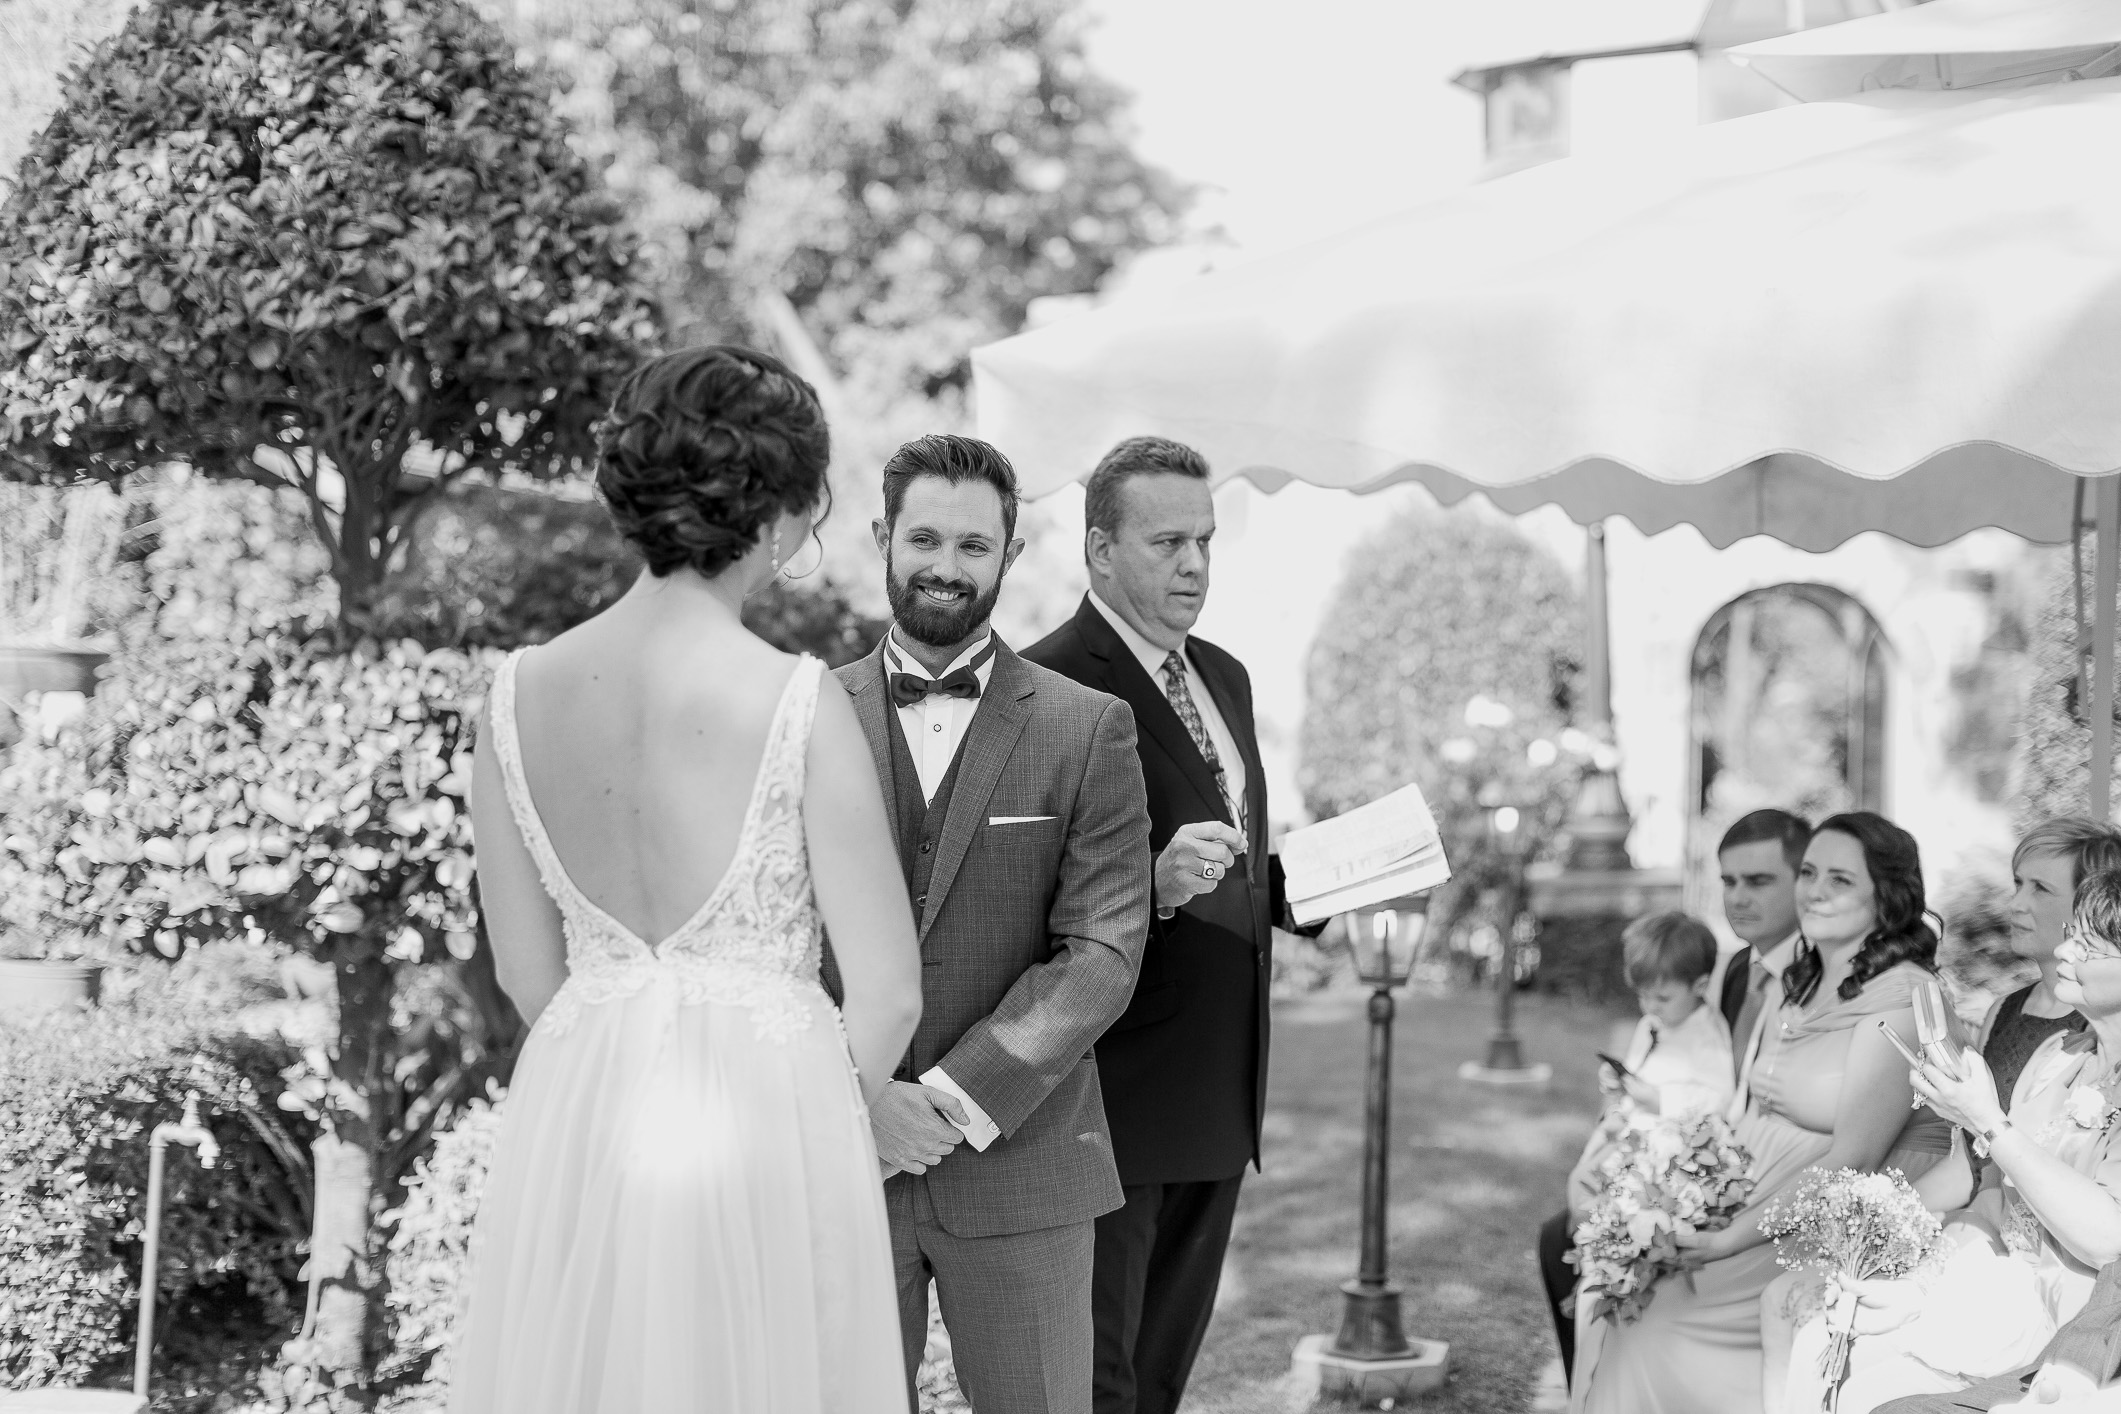 shepstone gardens wedding photographer 2017041.jpg